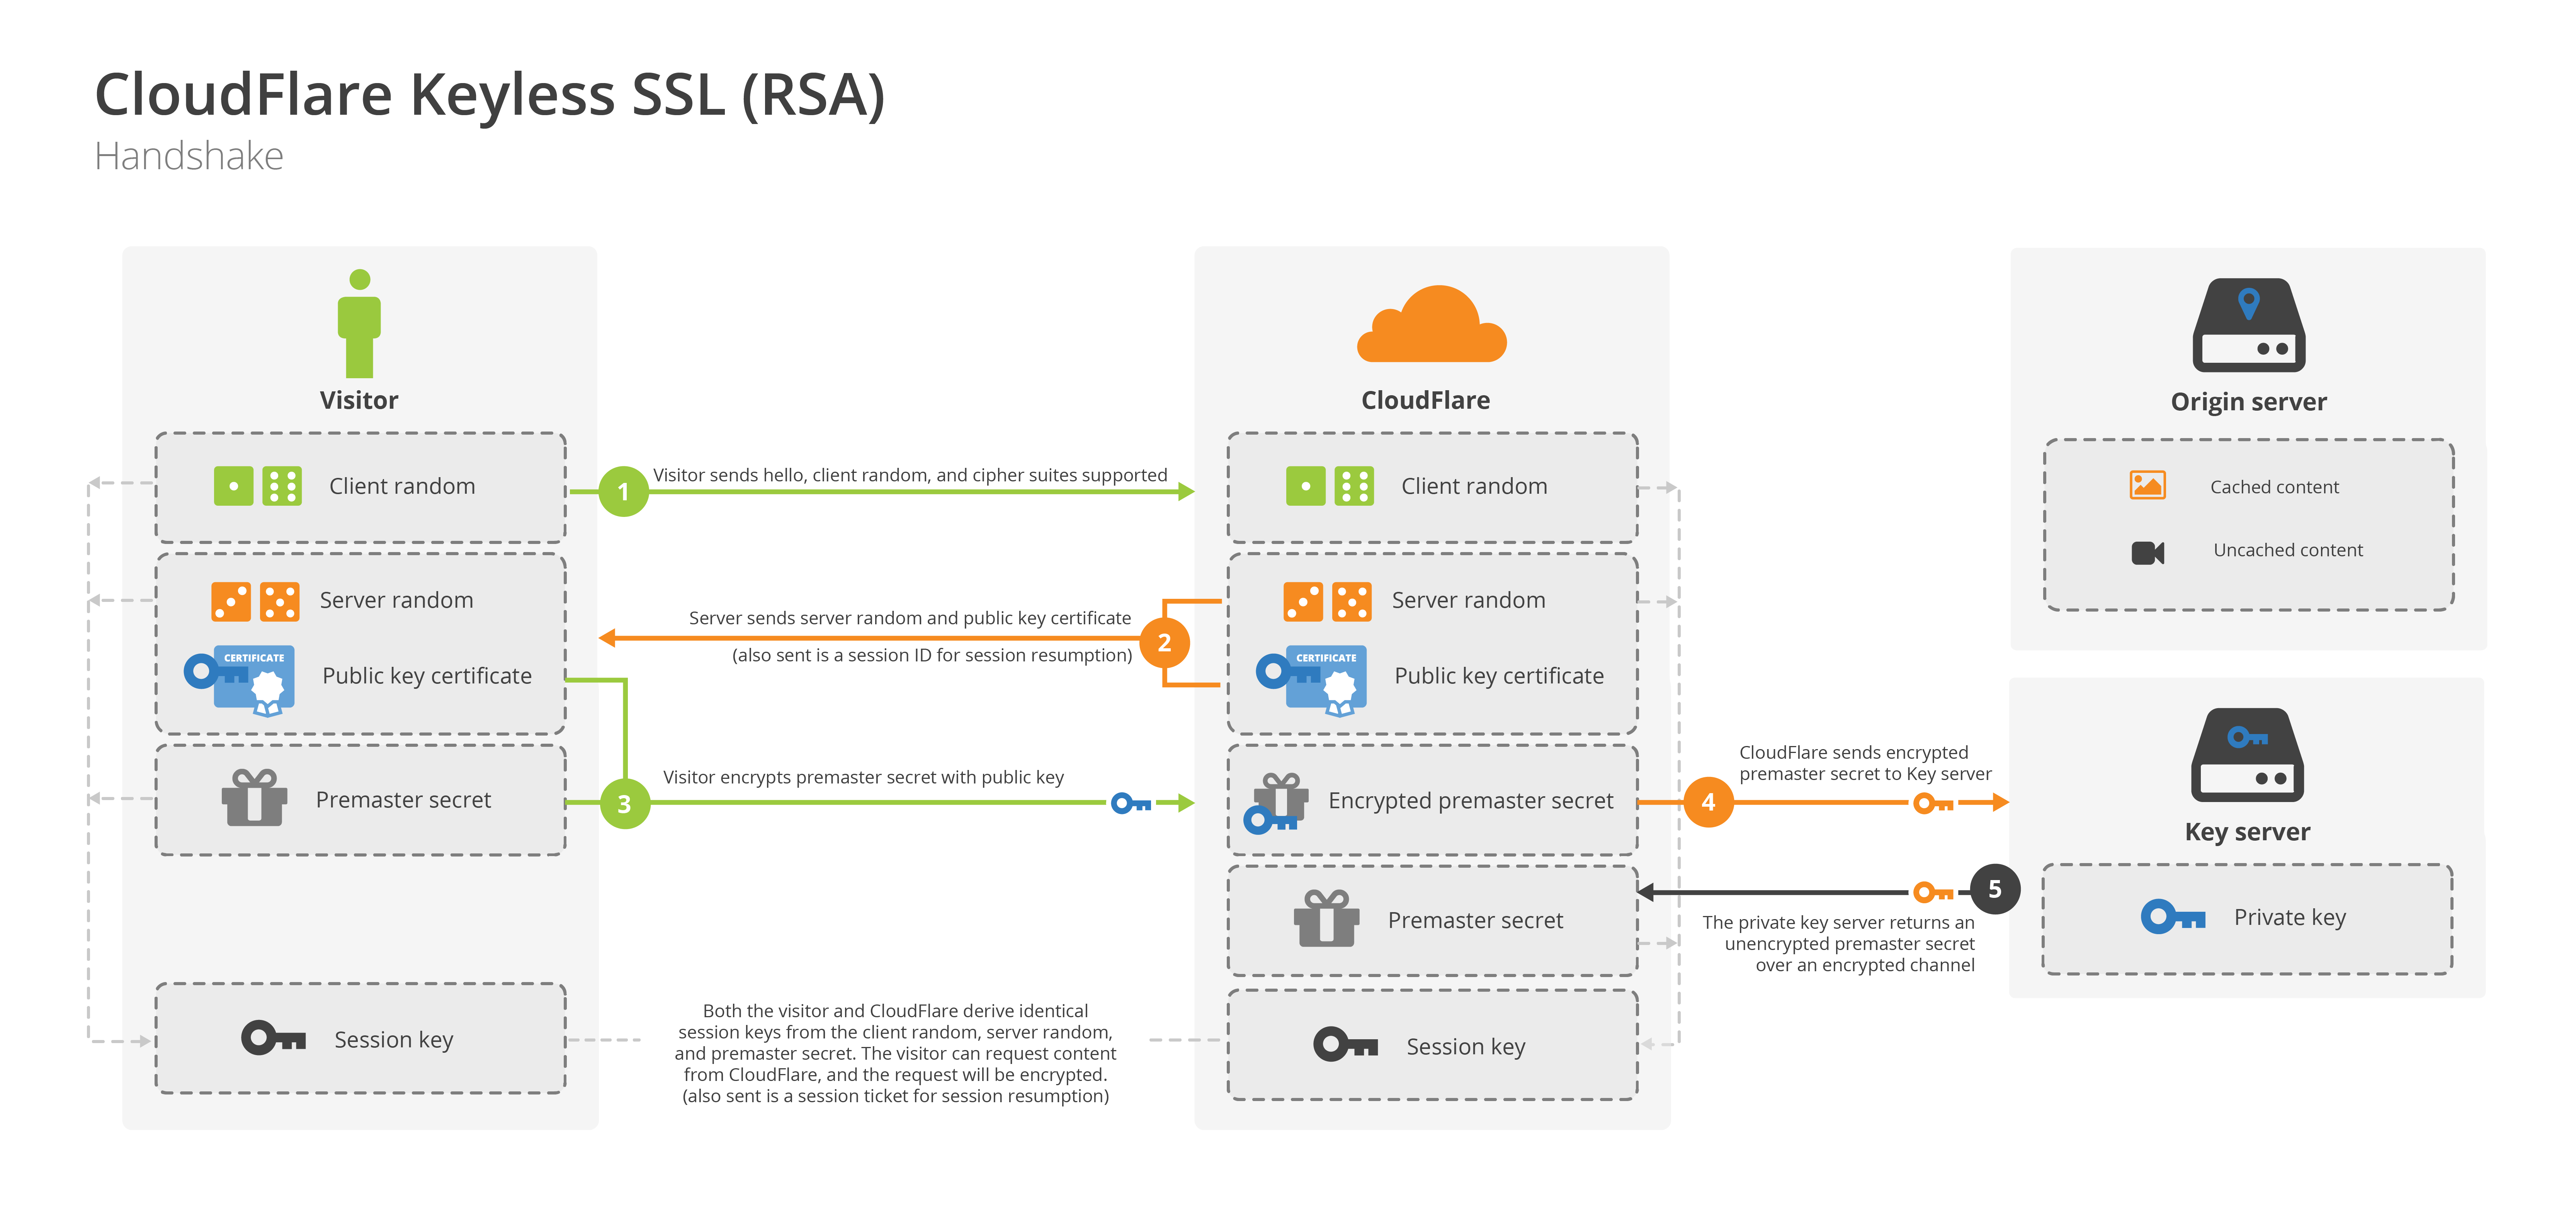 Keyless SSL RSA Diagram